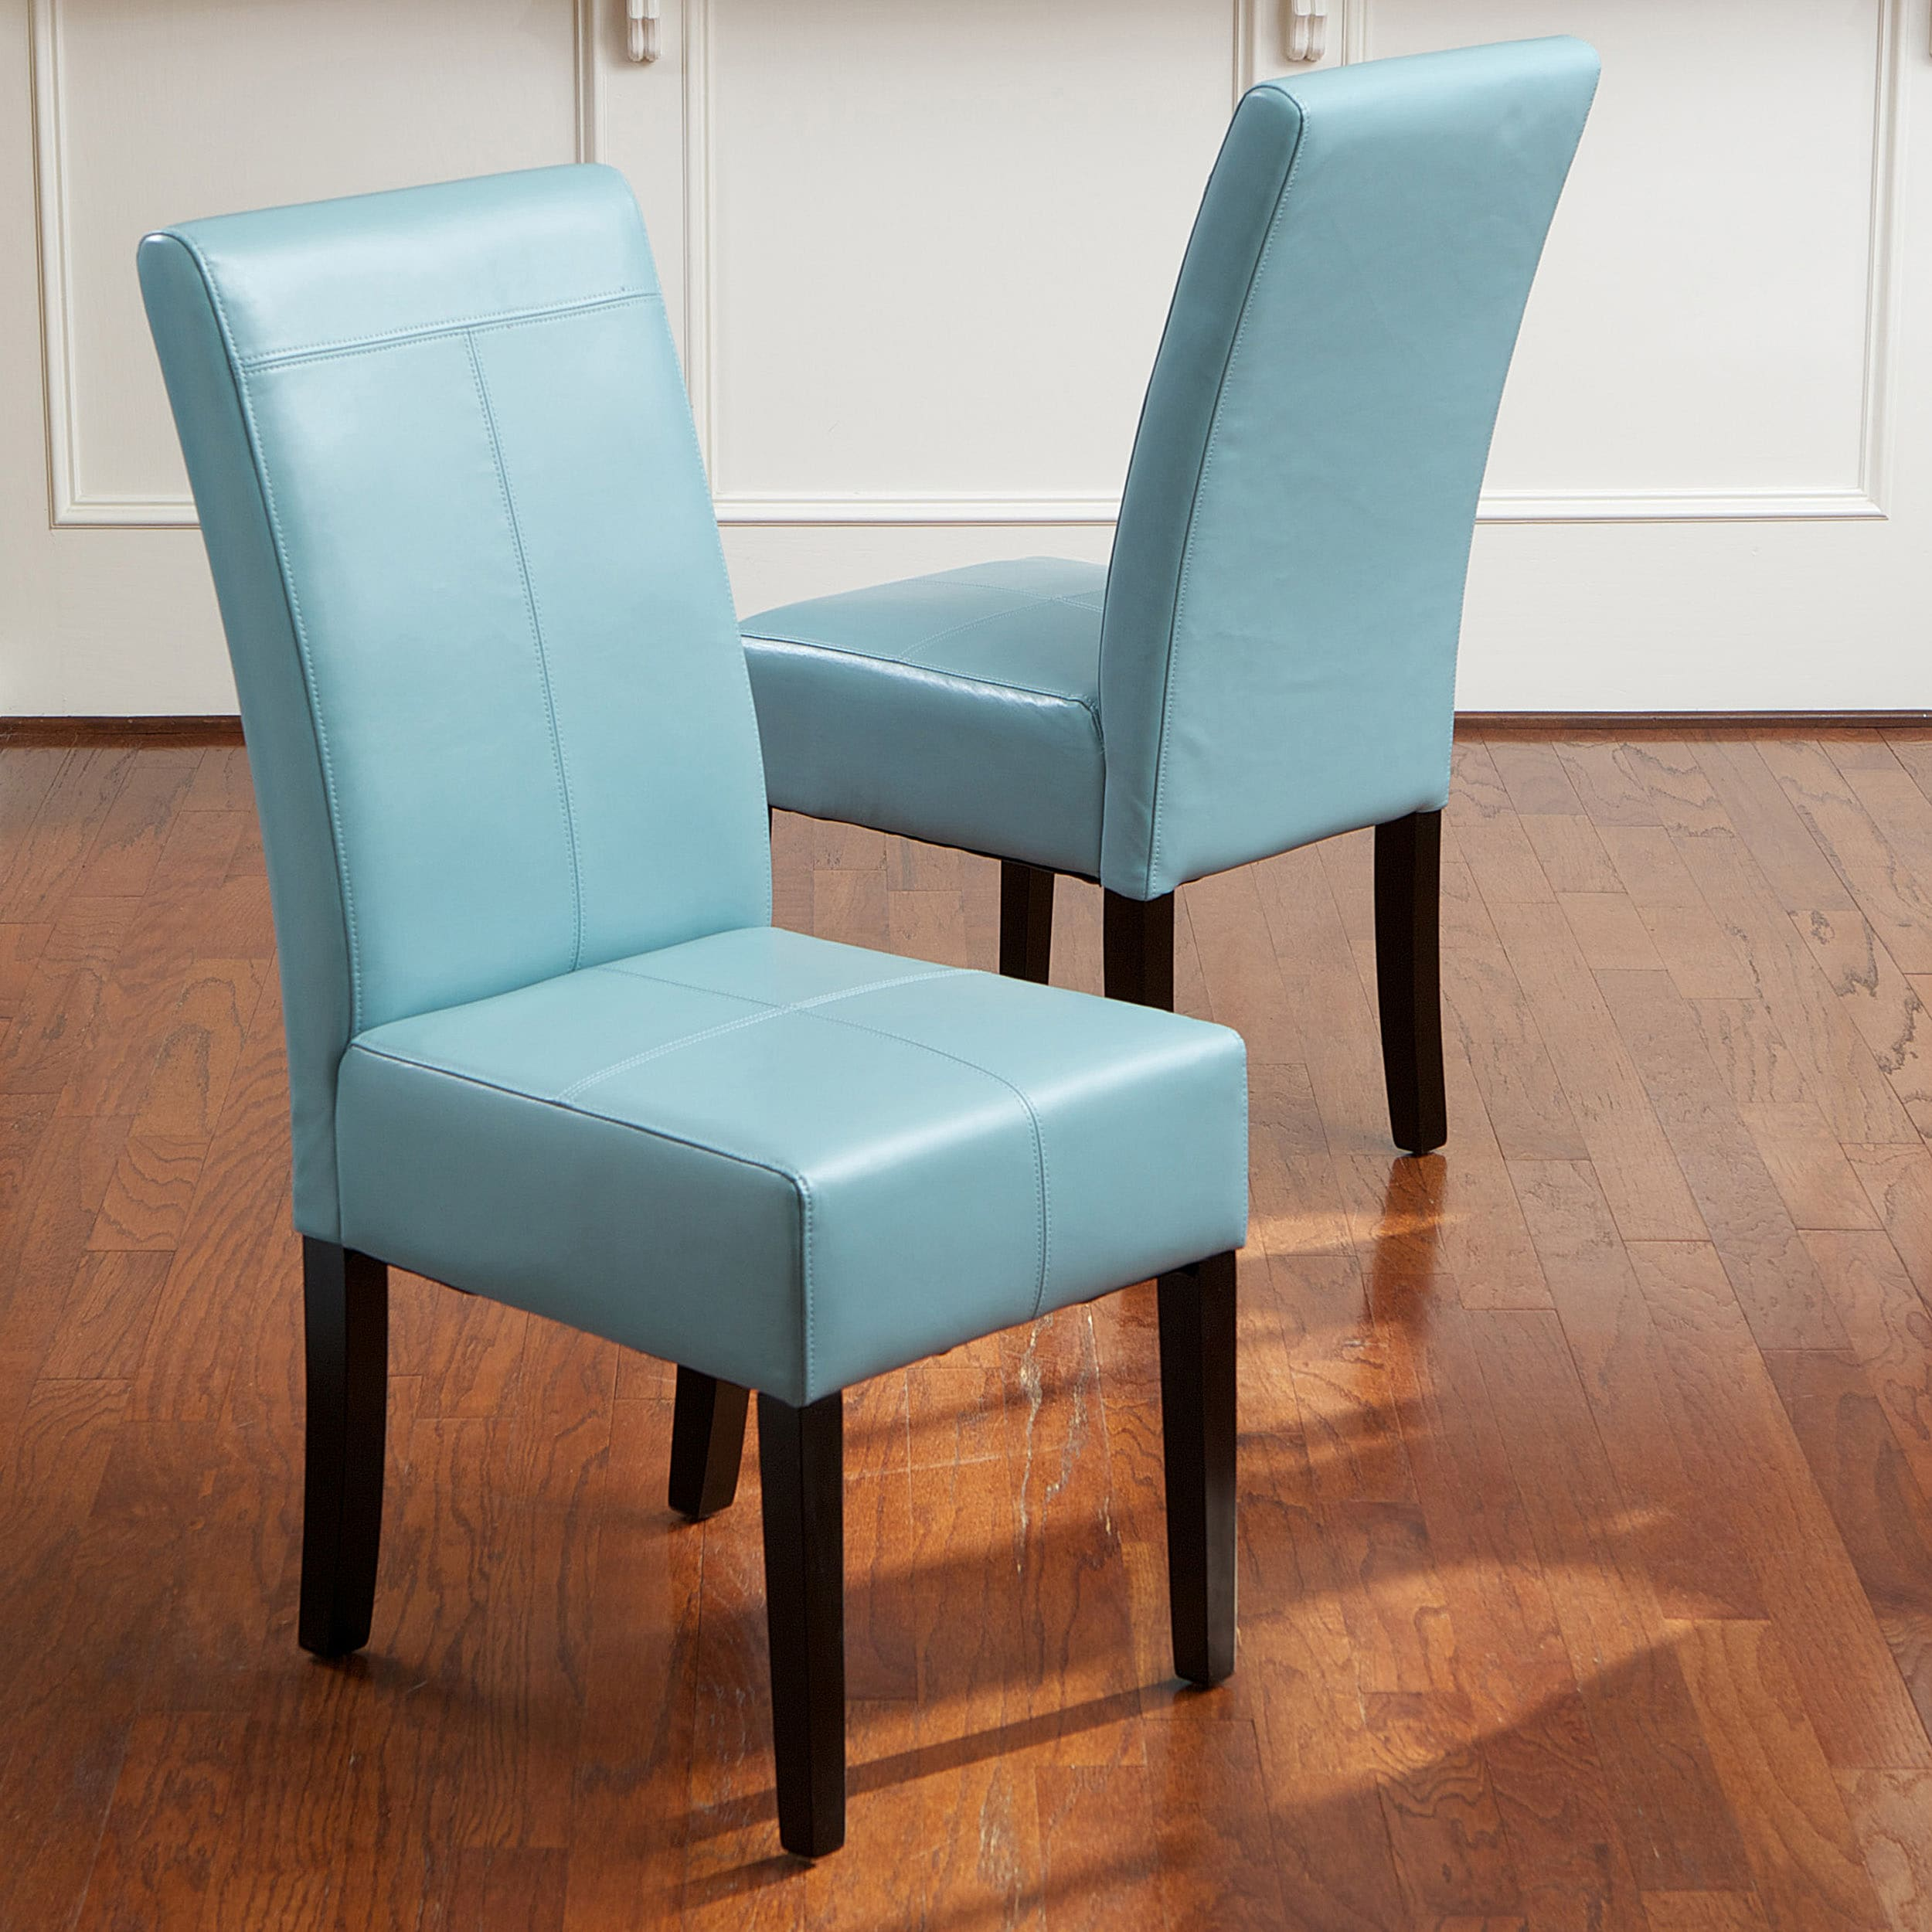 Blue Dining Chairs T Stitch Teal Blue Leather Dining Chairs Set Of 2 By Christopher Knight Home